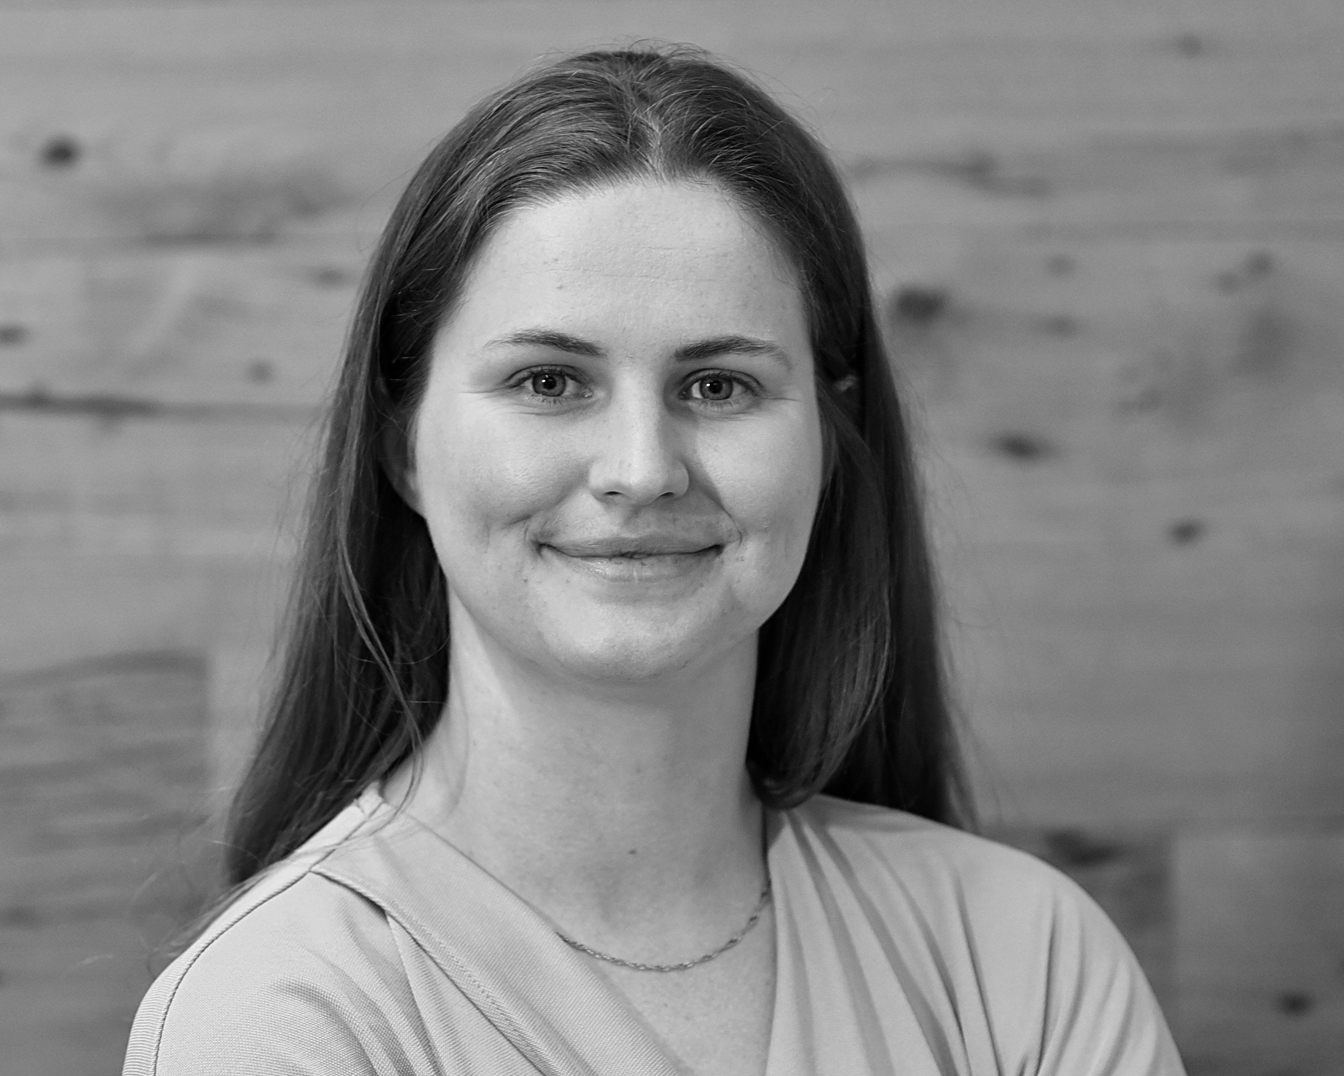 Lucy has been an alumna of the Happold Foundation since 2015, when she spent a summer working in the structures […]